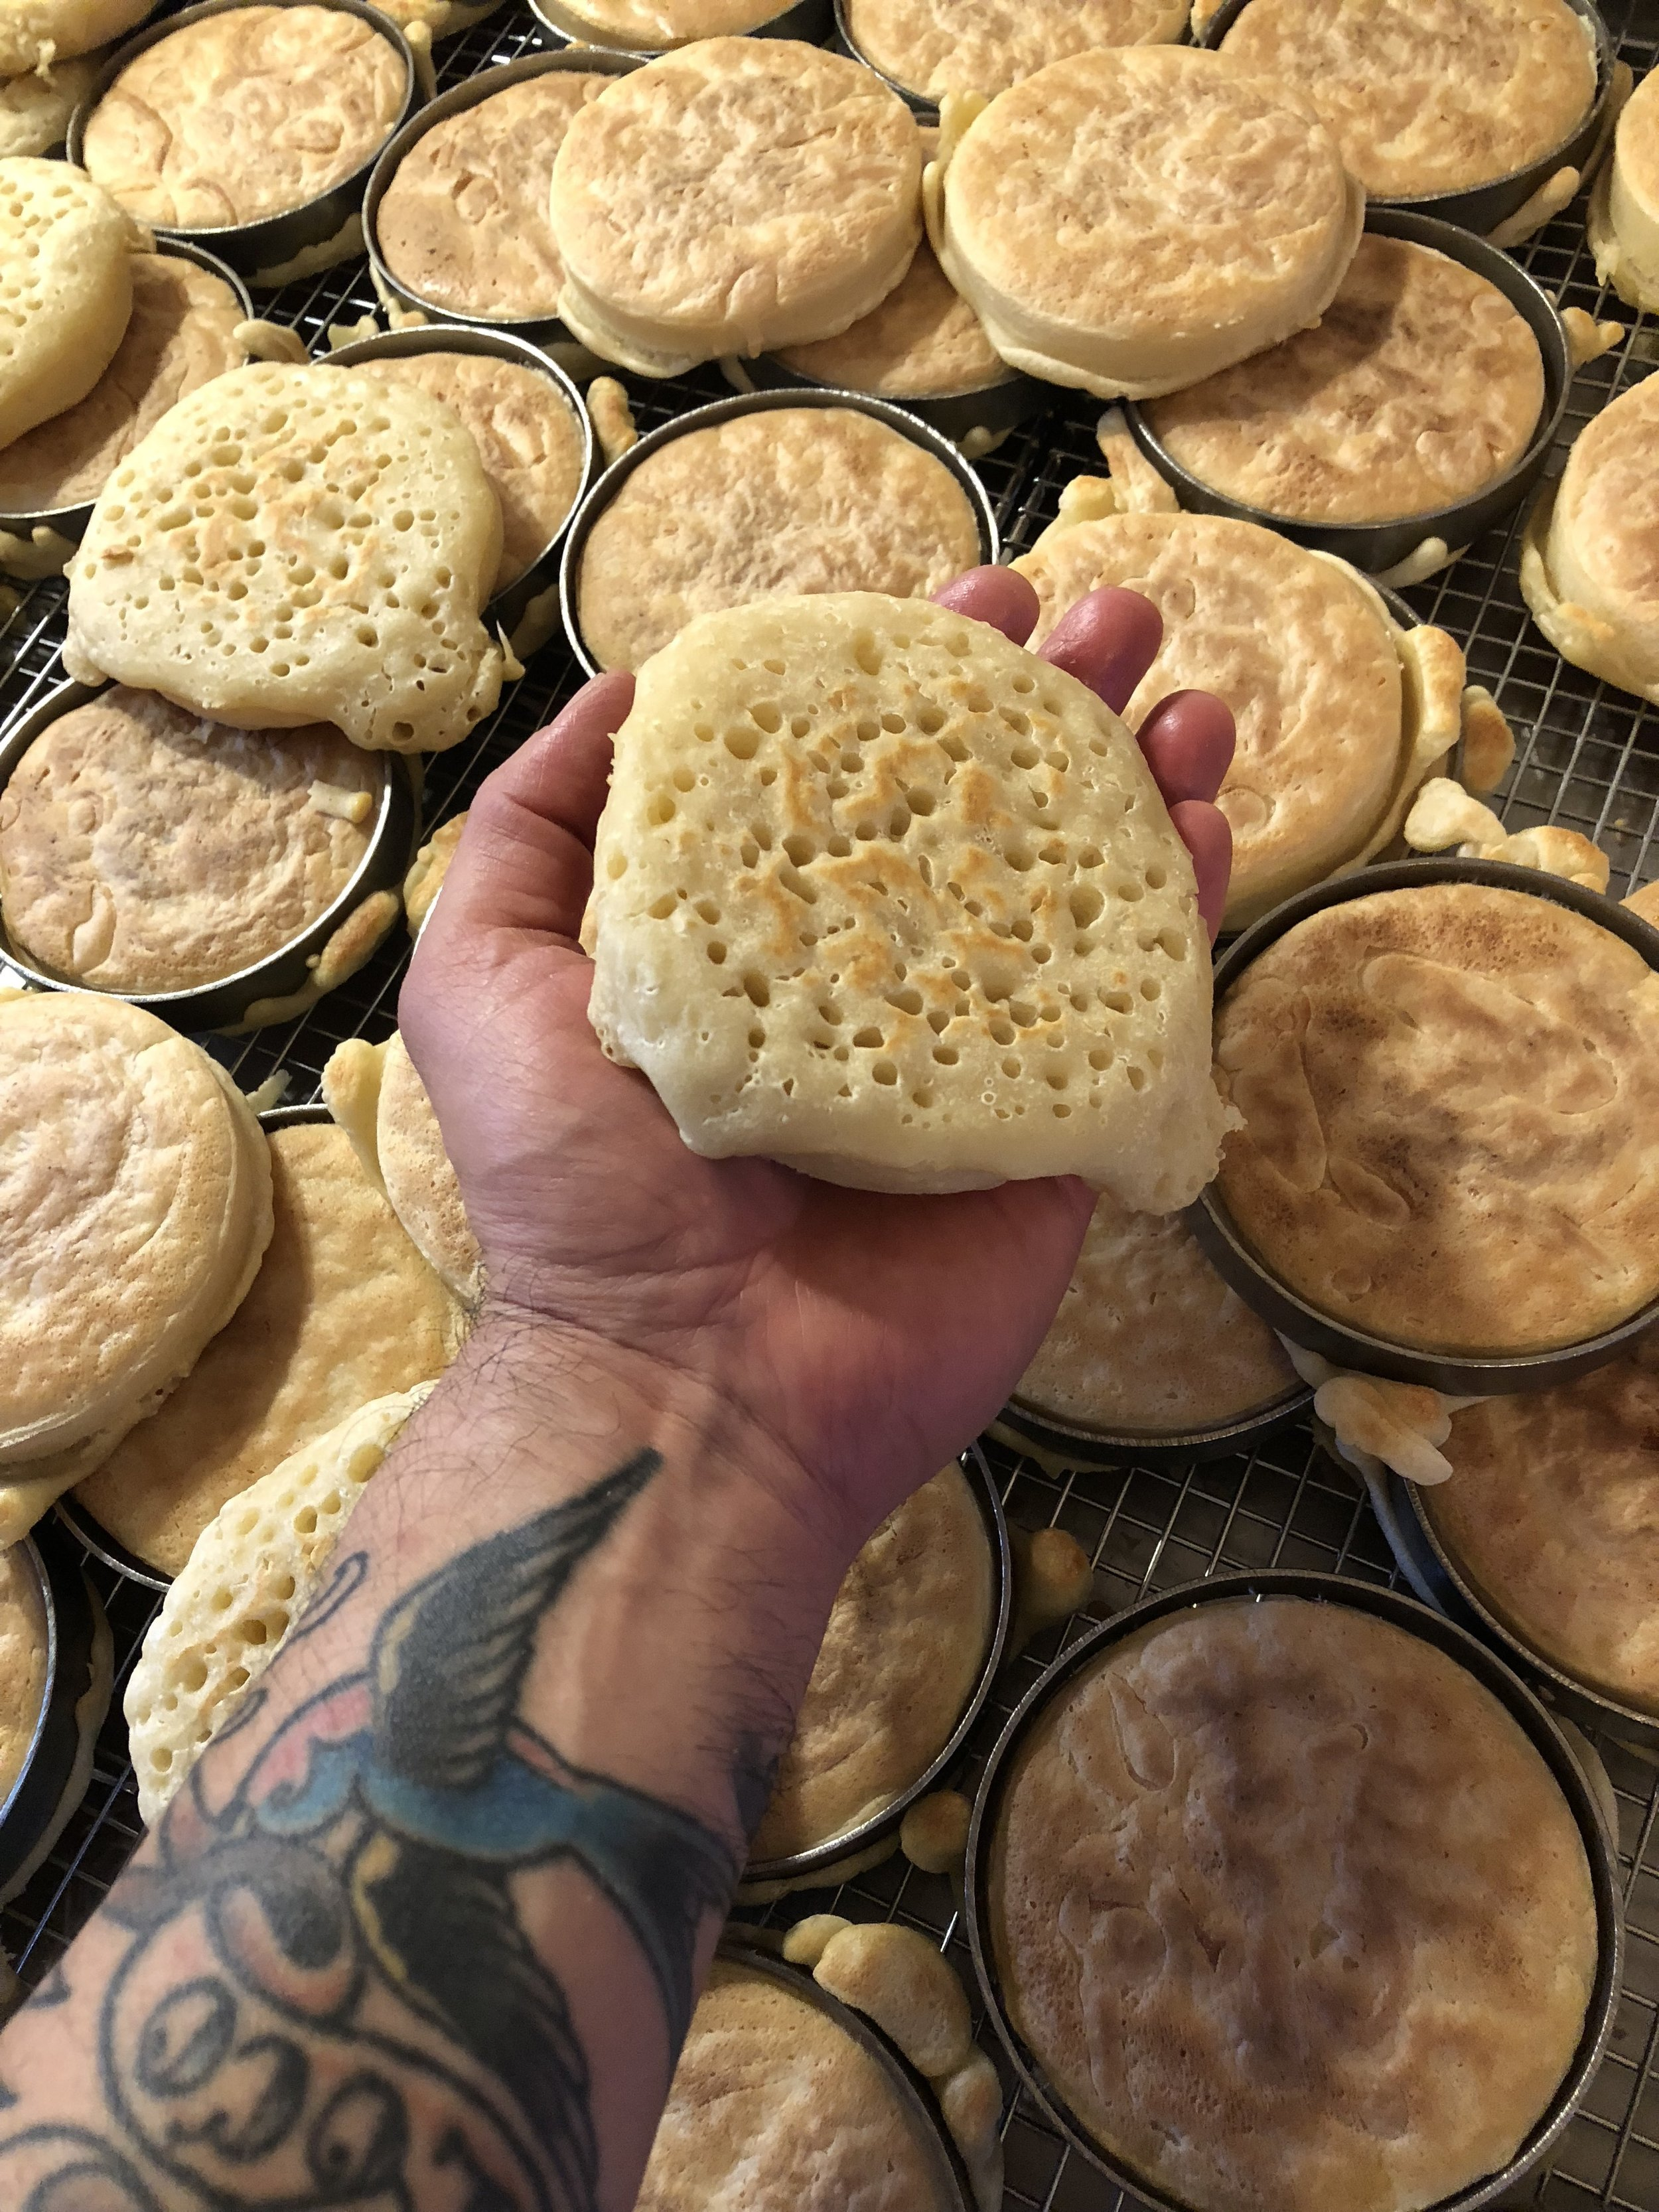 Backside of crumpets, just off the griddle and ready to pop out of the rings.